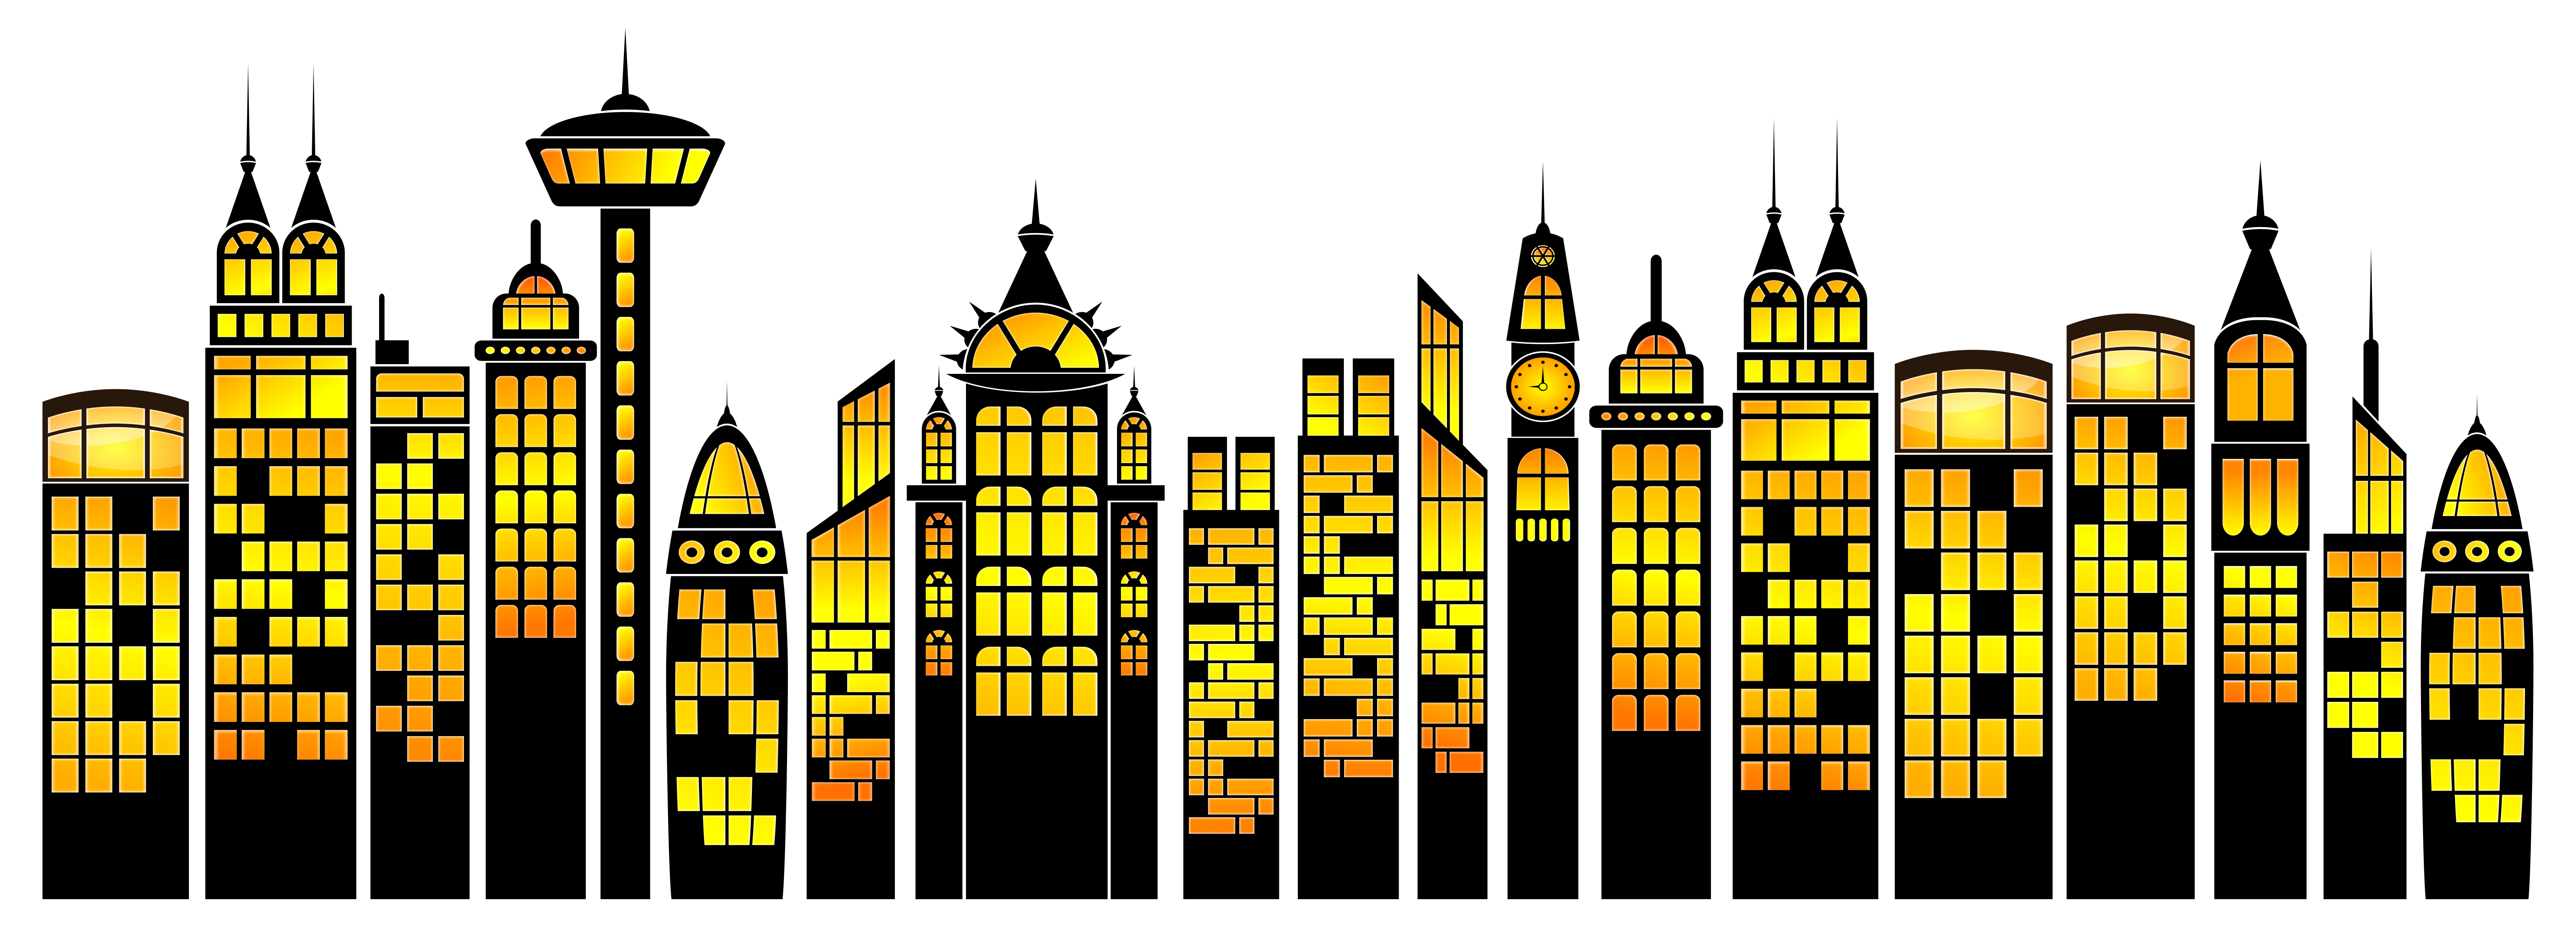 Station . Buildings clipart